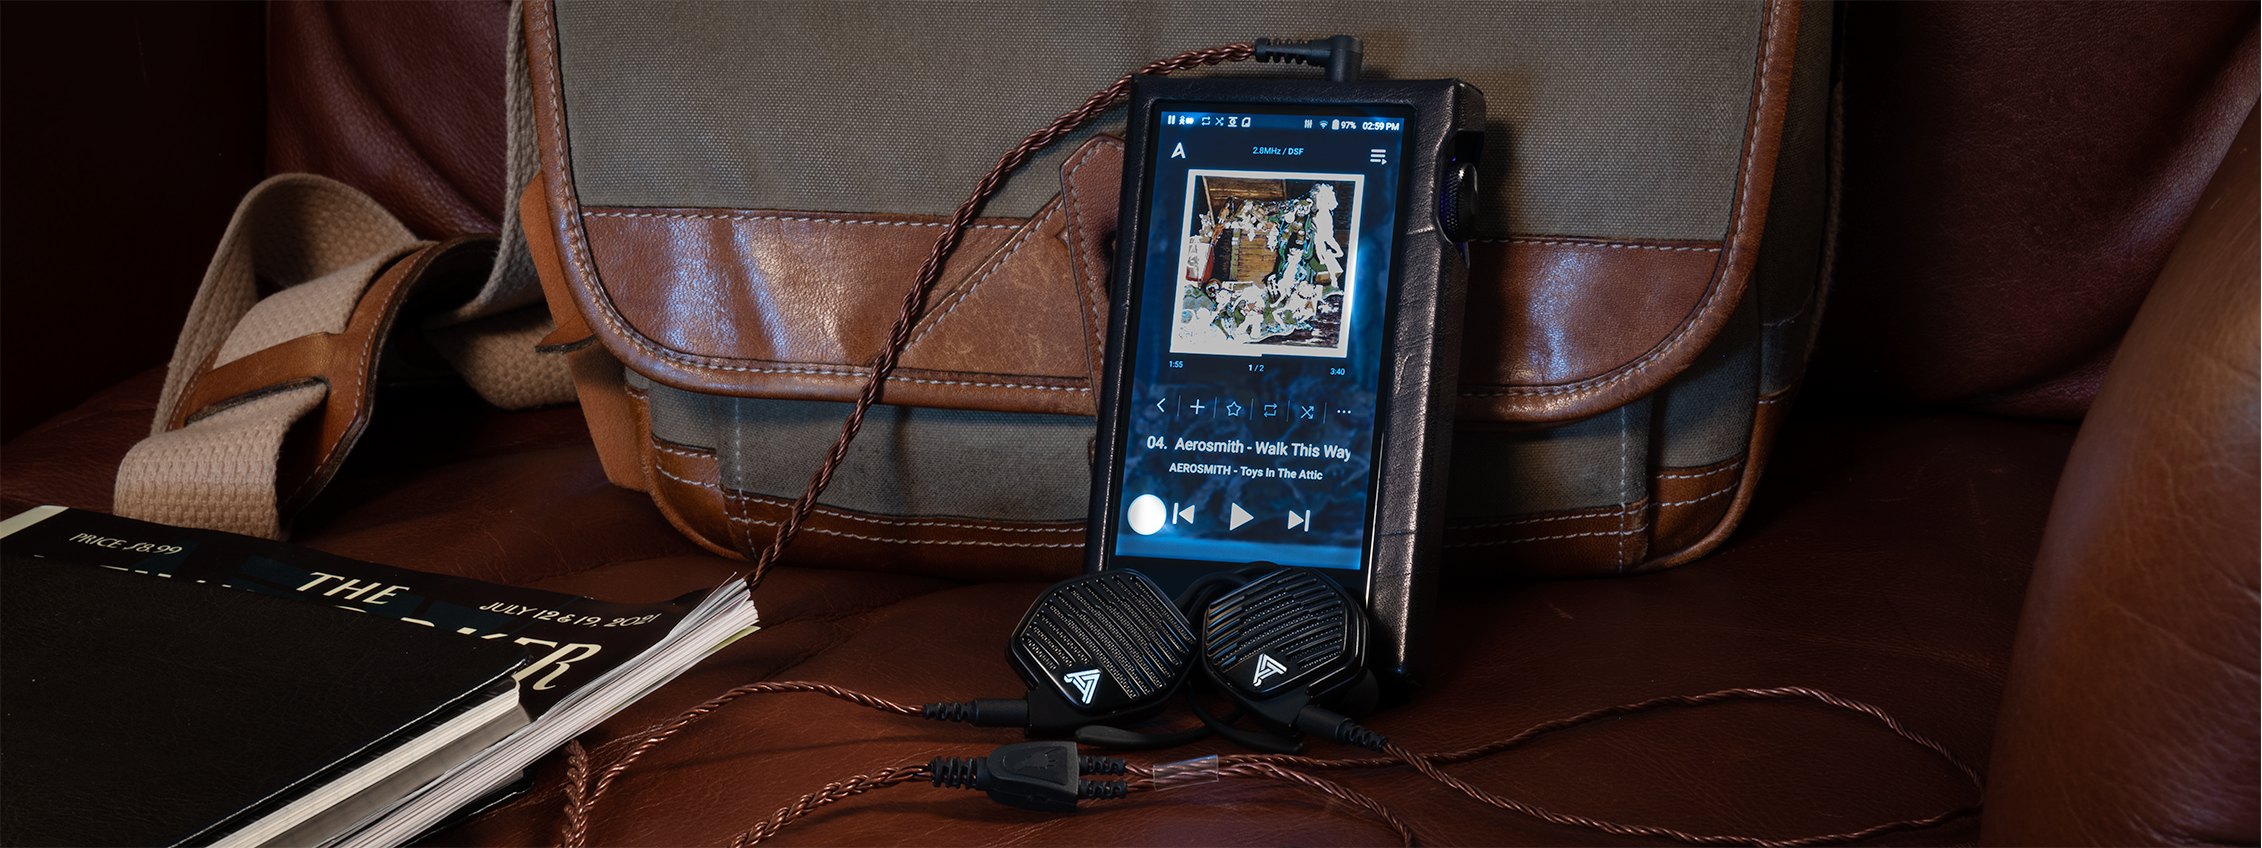 Audeze LCD-i3  with Bronze Dragon IEM cable and Astell&Kern SP1000 DAP.